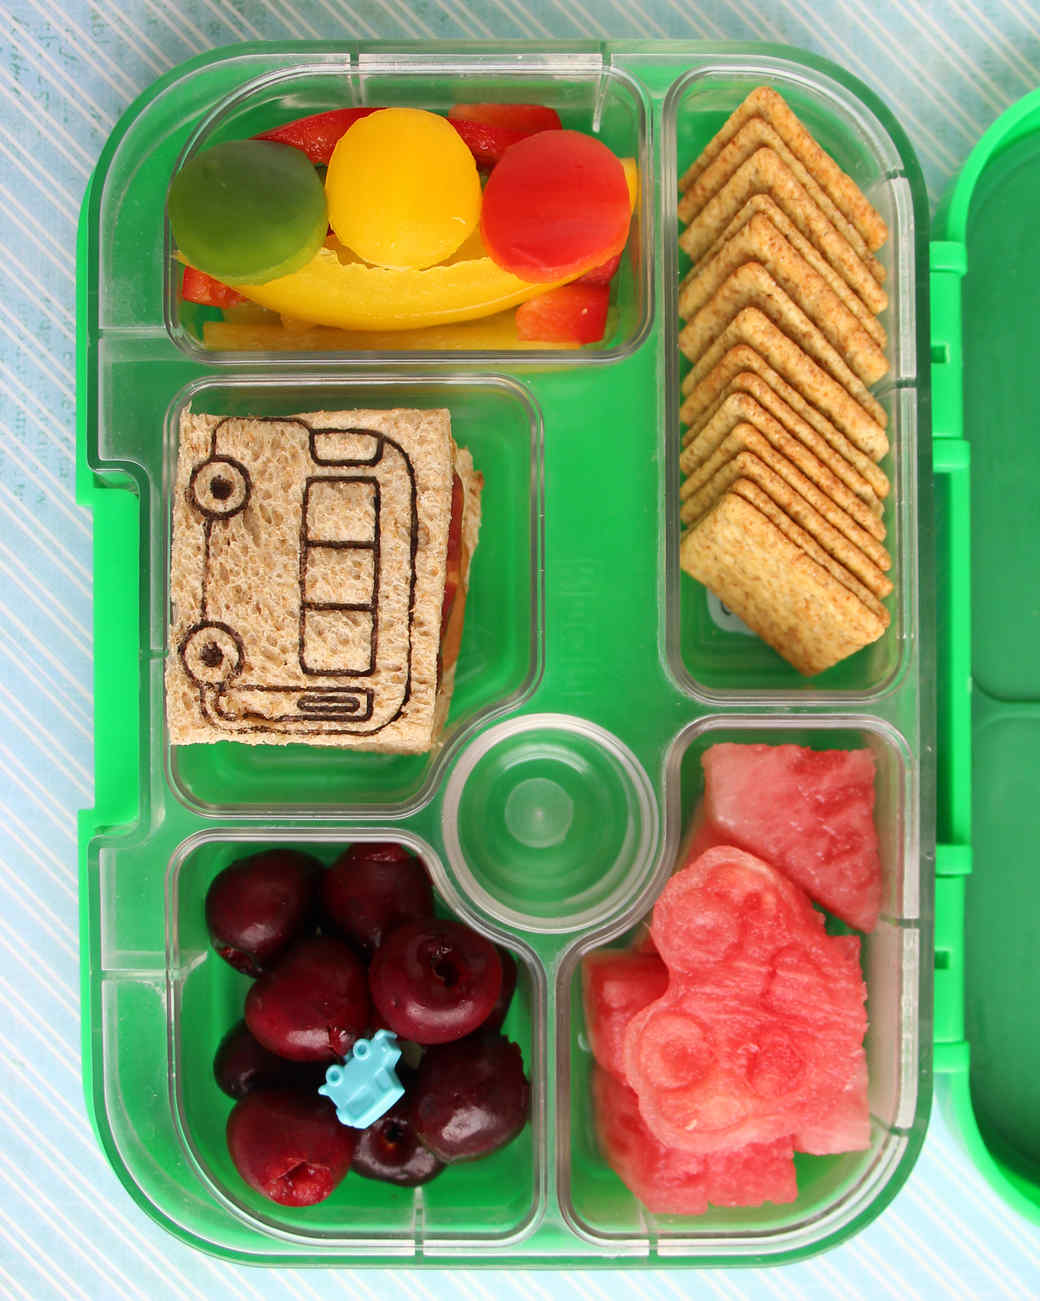 Fascinating Kids Ideas Wendy Copley Lunches You Can Actually Make Martha Lunch Box Kid Girls Lunch Box baby Lunch Box For Kids